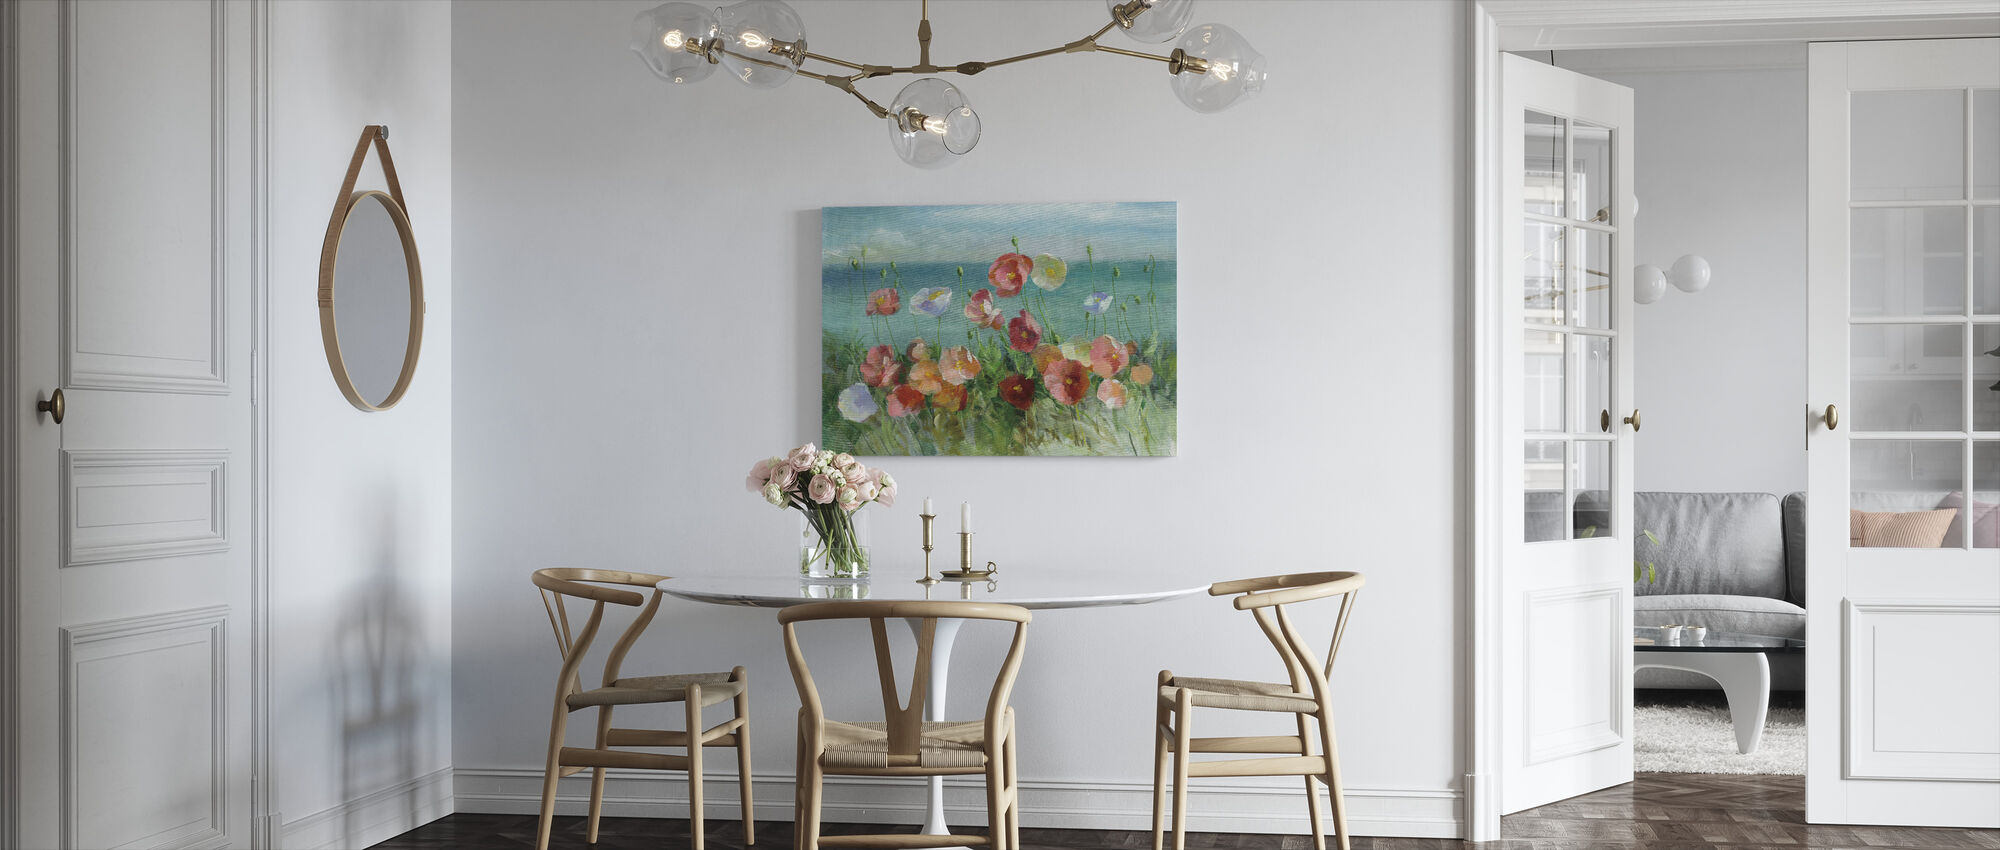 Coastal Poppies - Canvas print - Kitchen